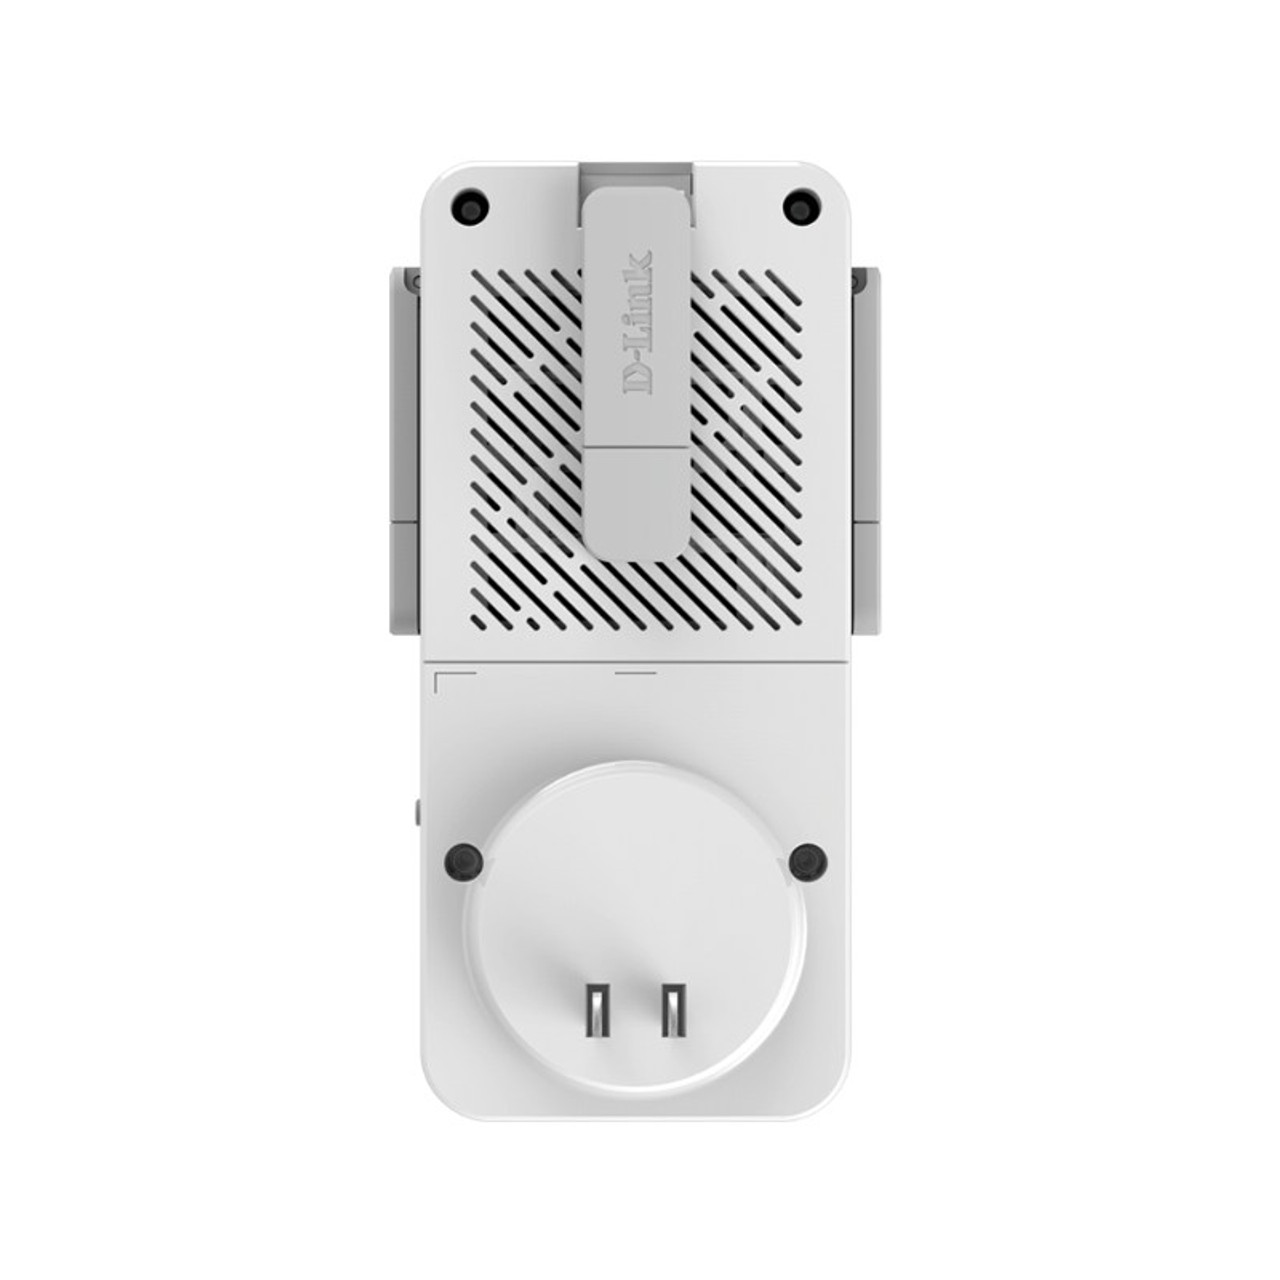 D-Link WiFi Range Extender AC1750 Plug In Wall Booster